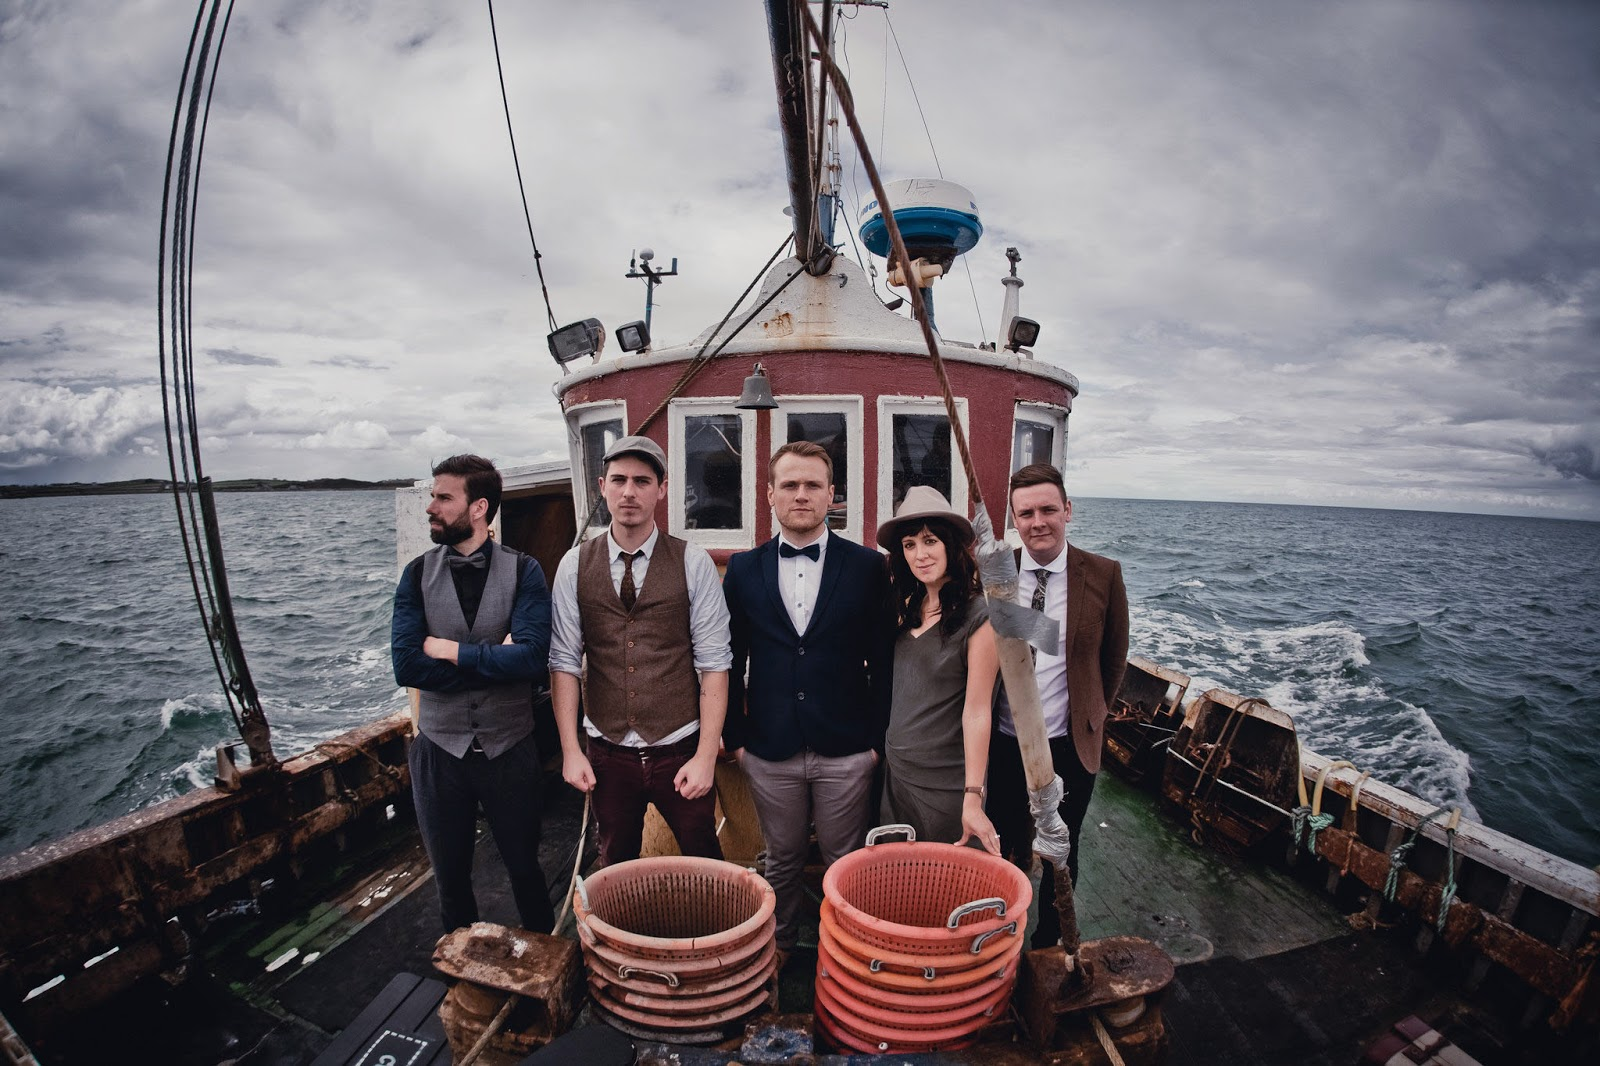 Rend Collective - The Art of Celebration 2014 Biography and History